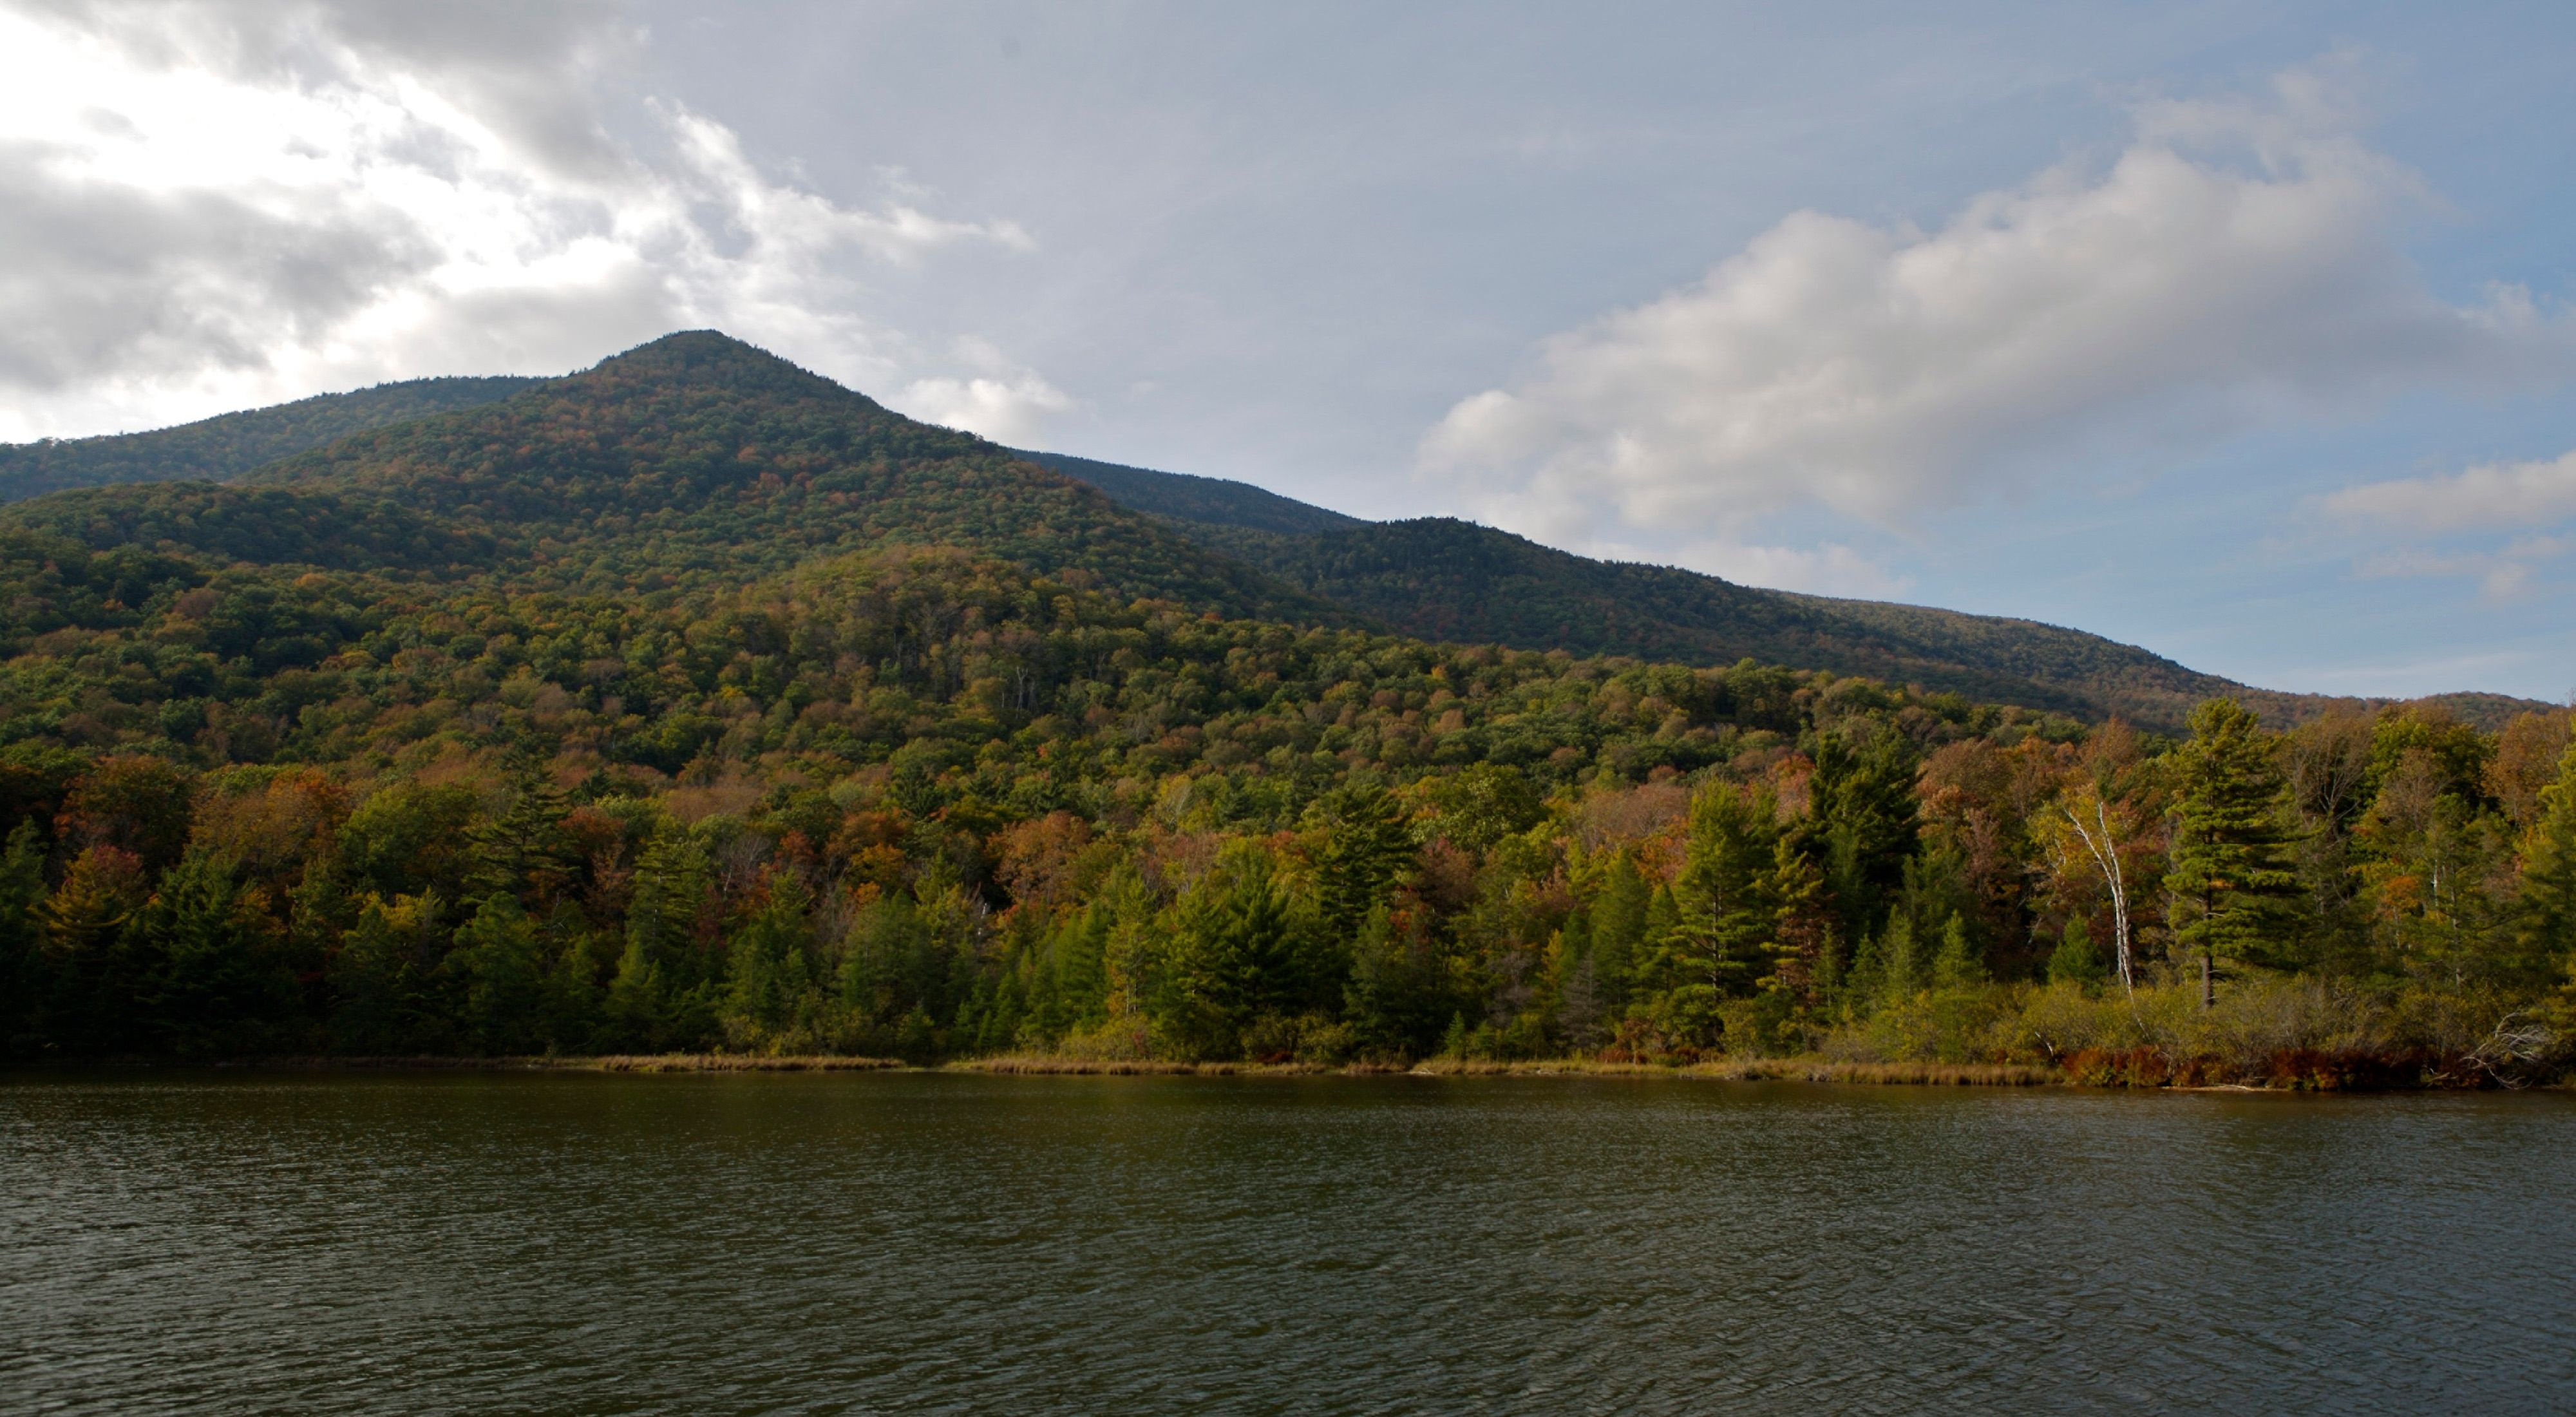 View of Vermont's Mount Equinox during Fall.